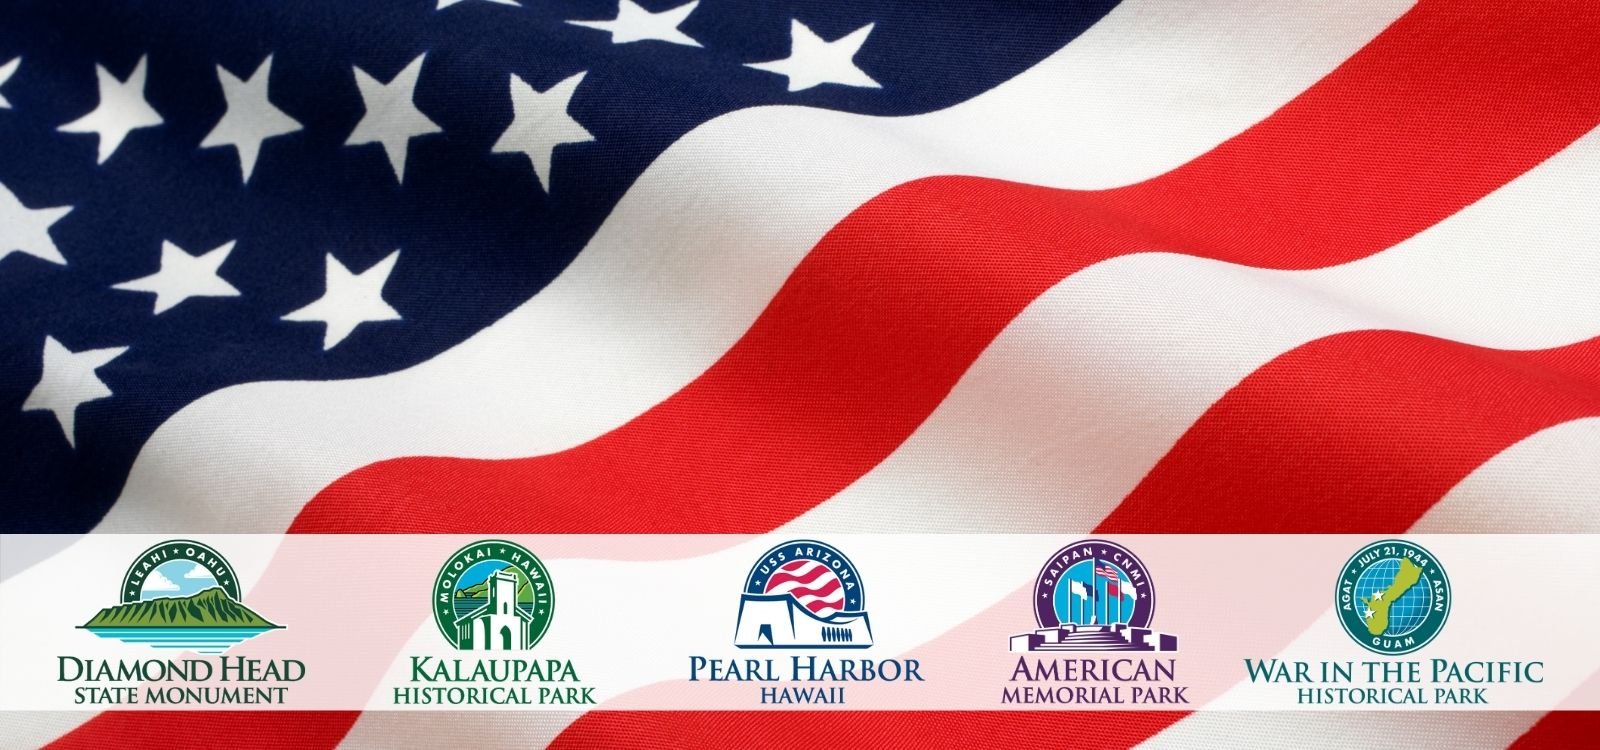 US flag with icons for national parks